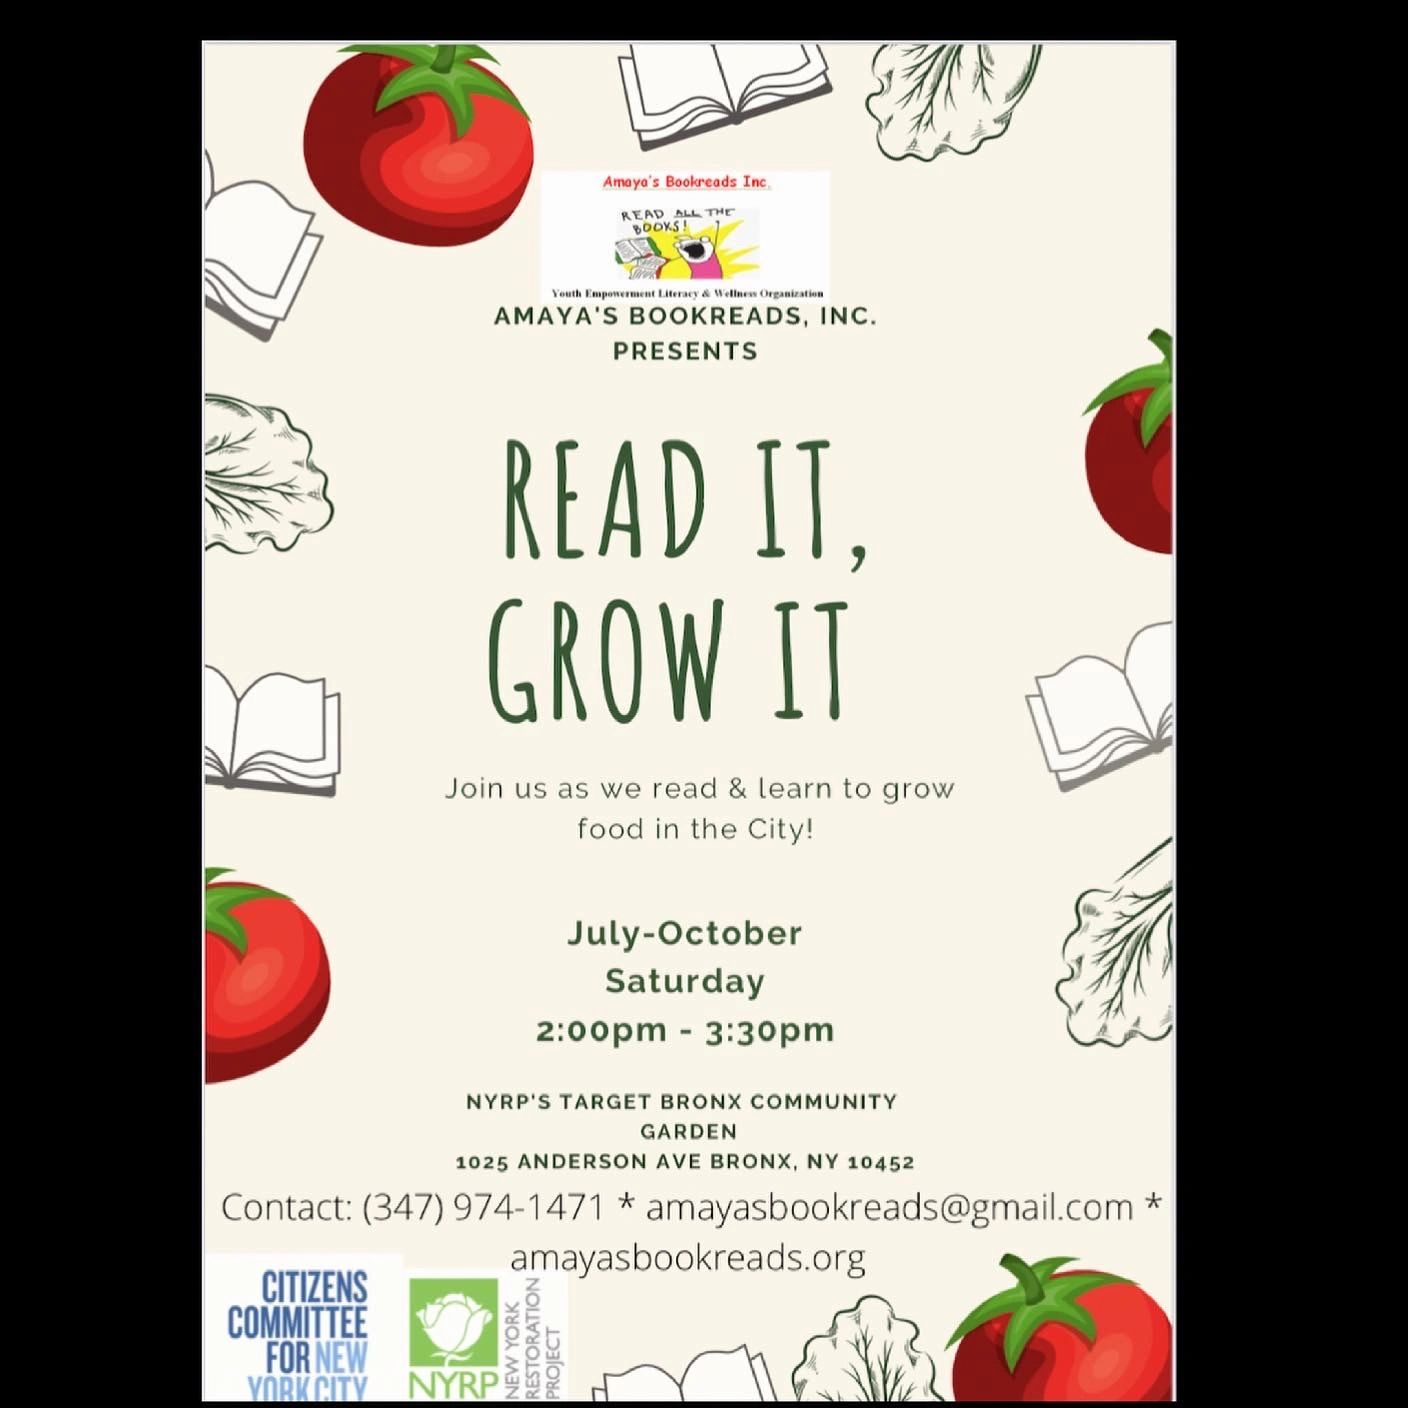 We're back! Read it, Grow it will be in Dyckman & Highbridge. Contact for more info.